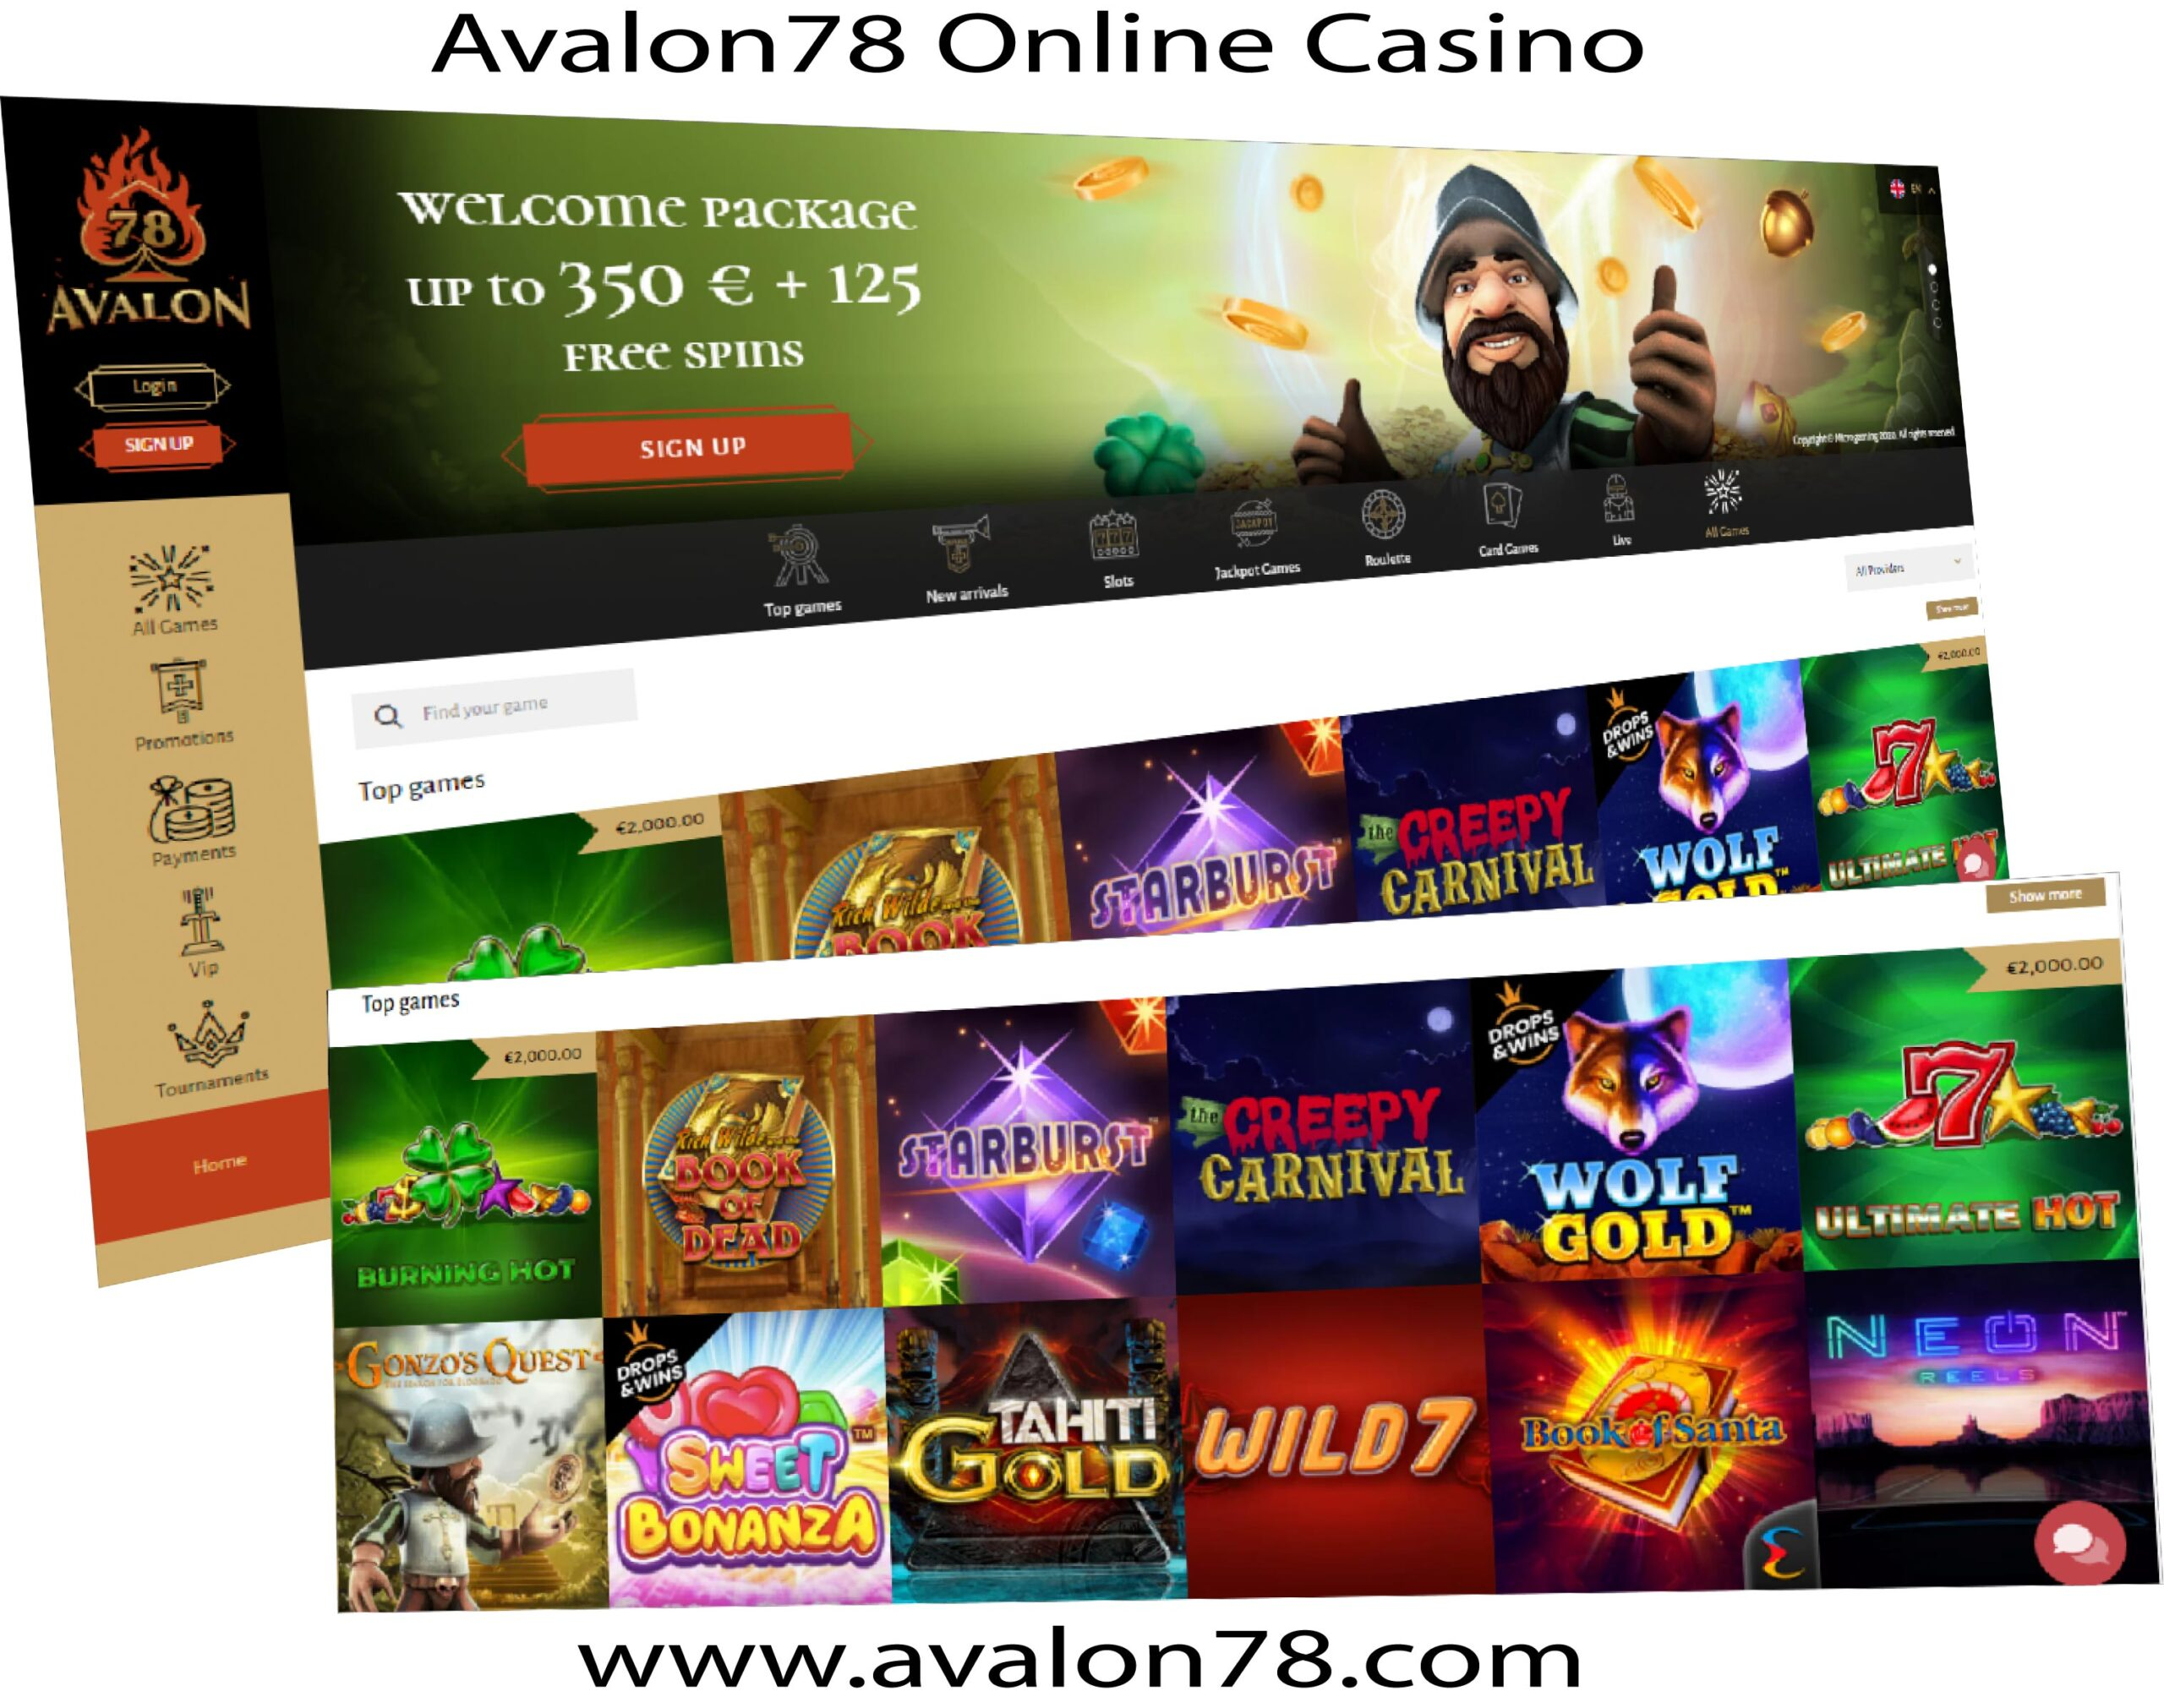 How To Play Casino Games At Avalon78